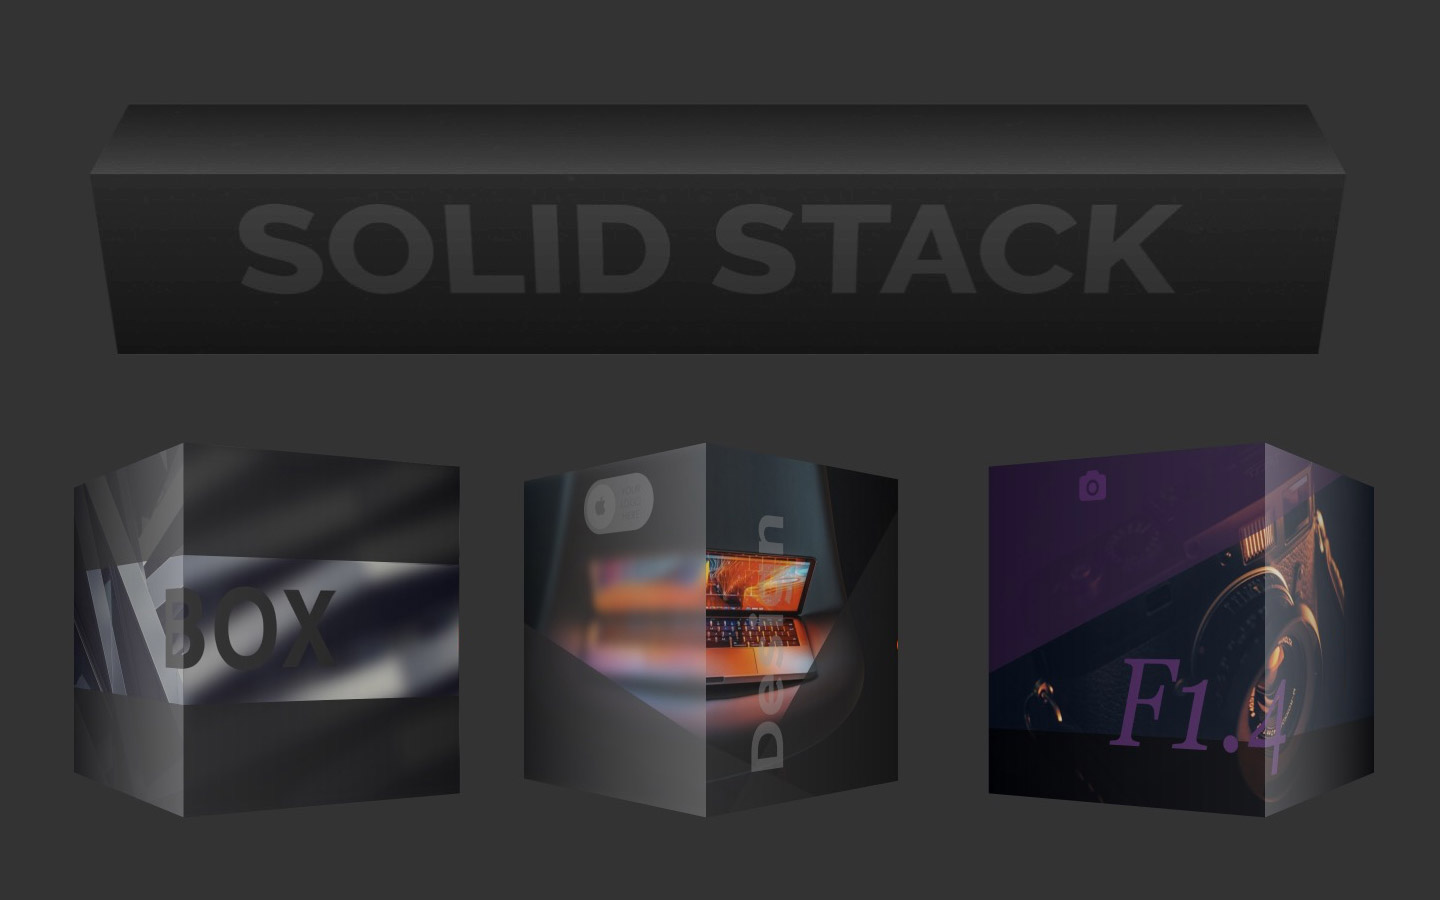 stack_solid_preview_001